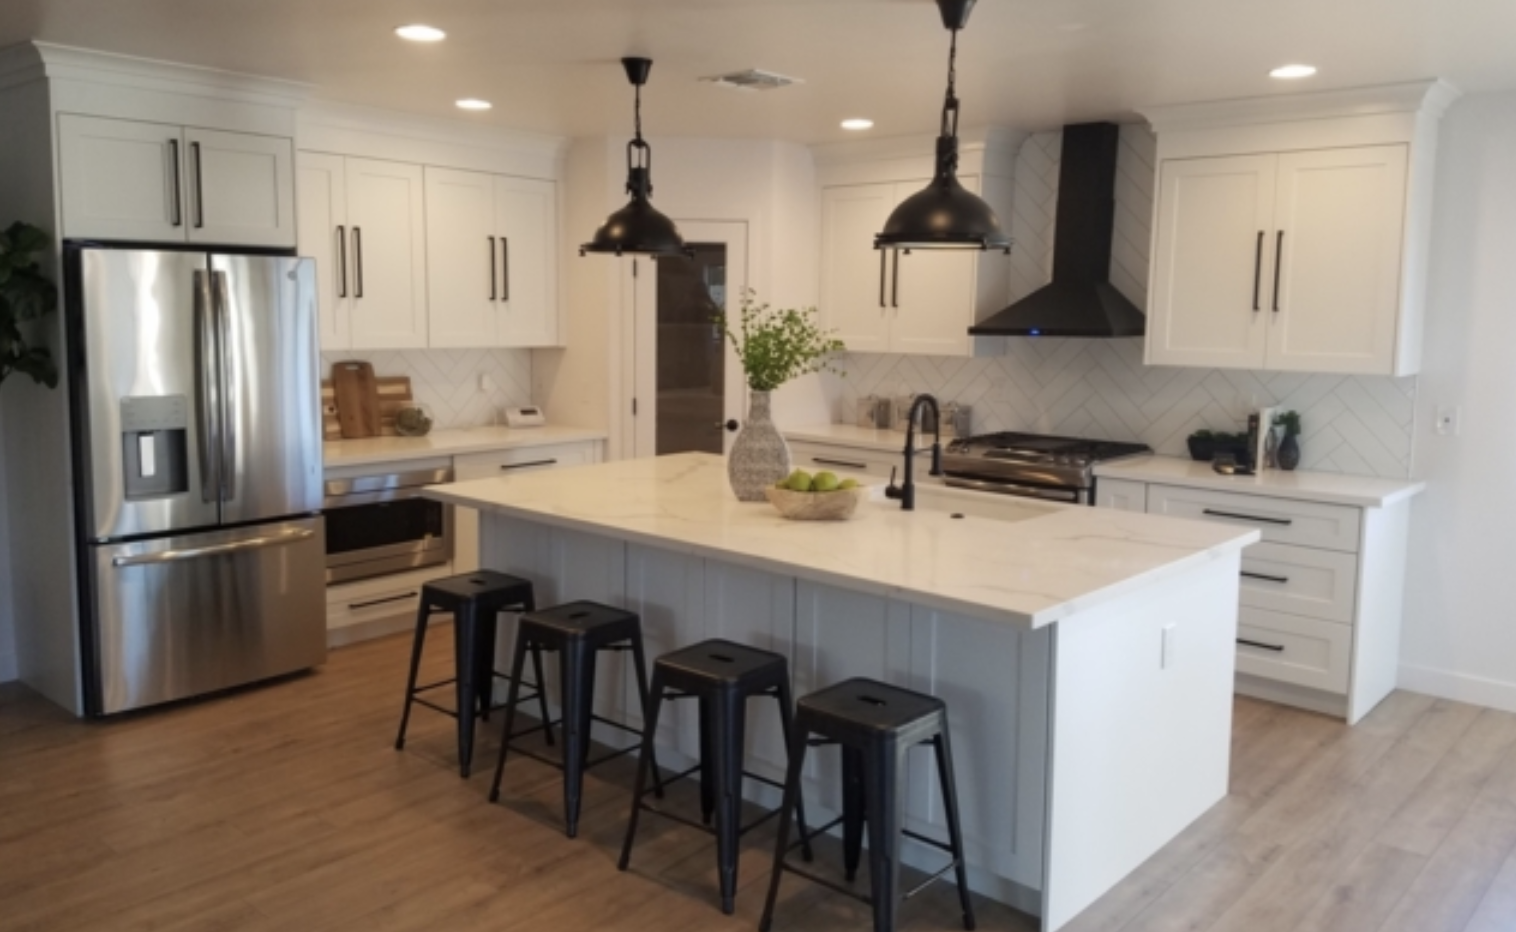 Kitchen Trends That Will Last - White Shaker Cabinets - CO & AZ